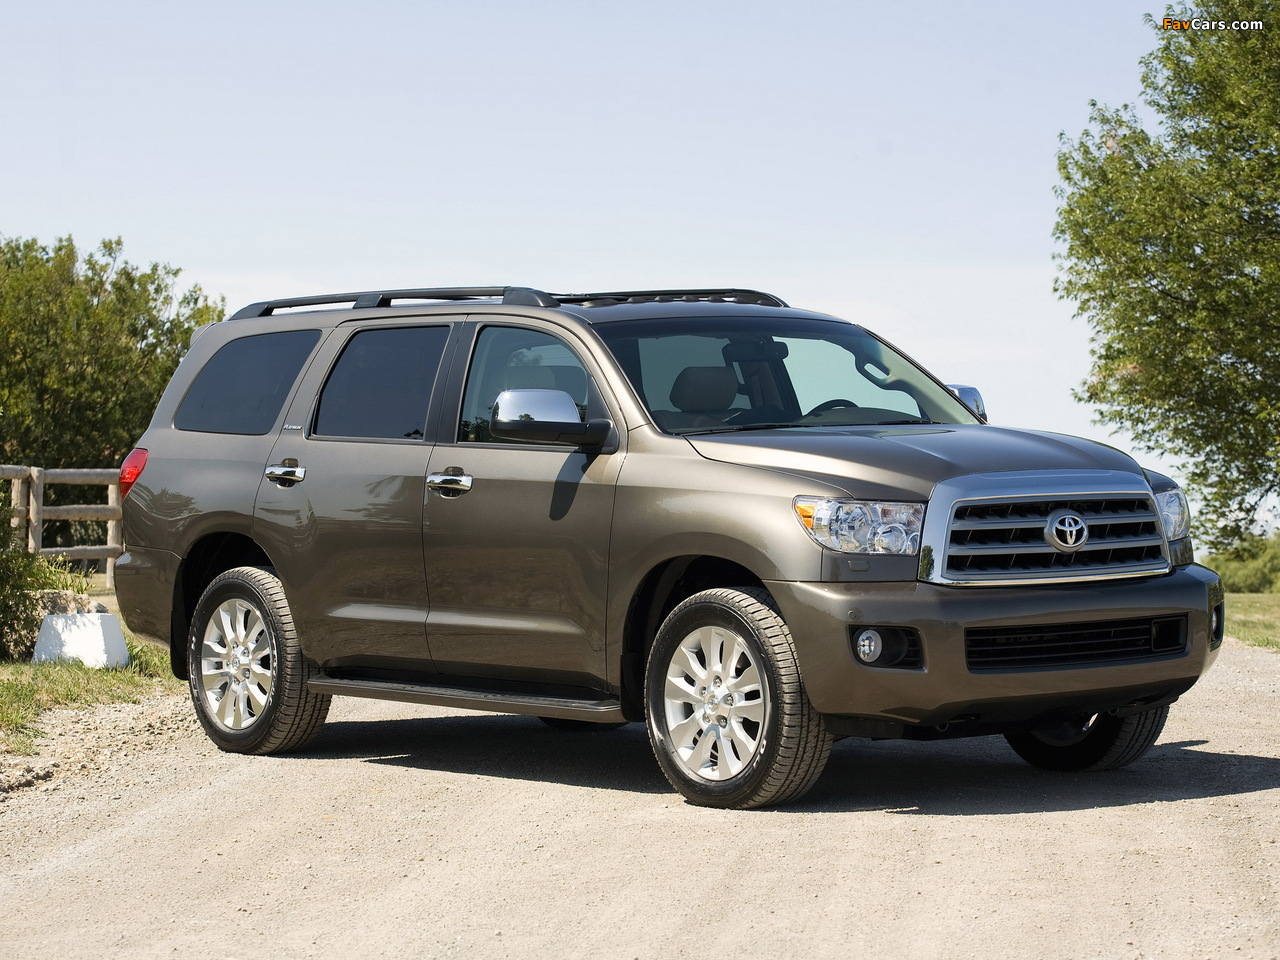 Toyota Sequoia Limited 2007 pictures (1280 x 960)